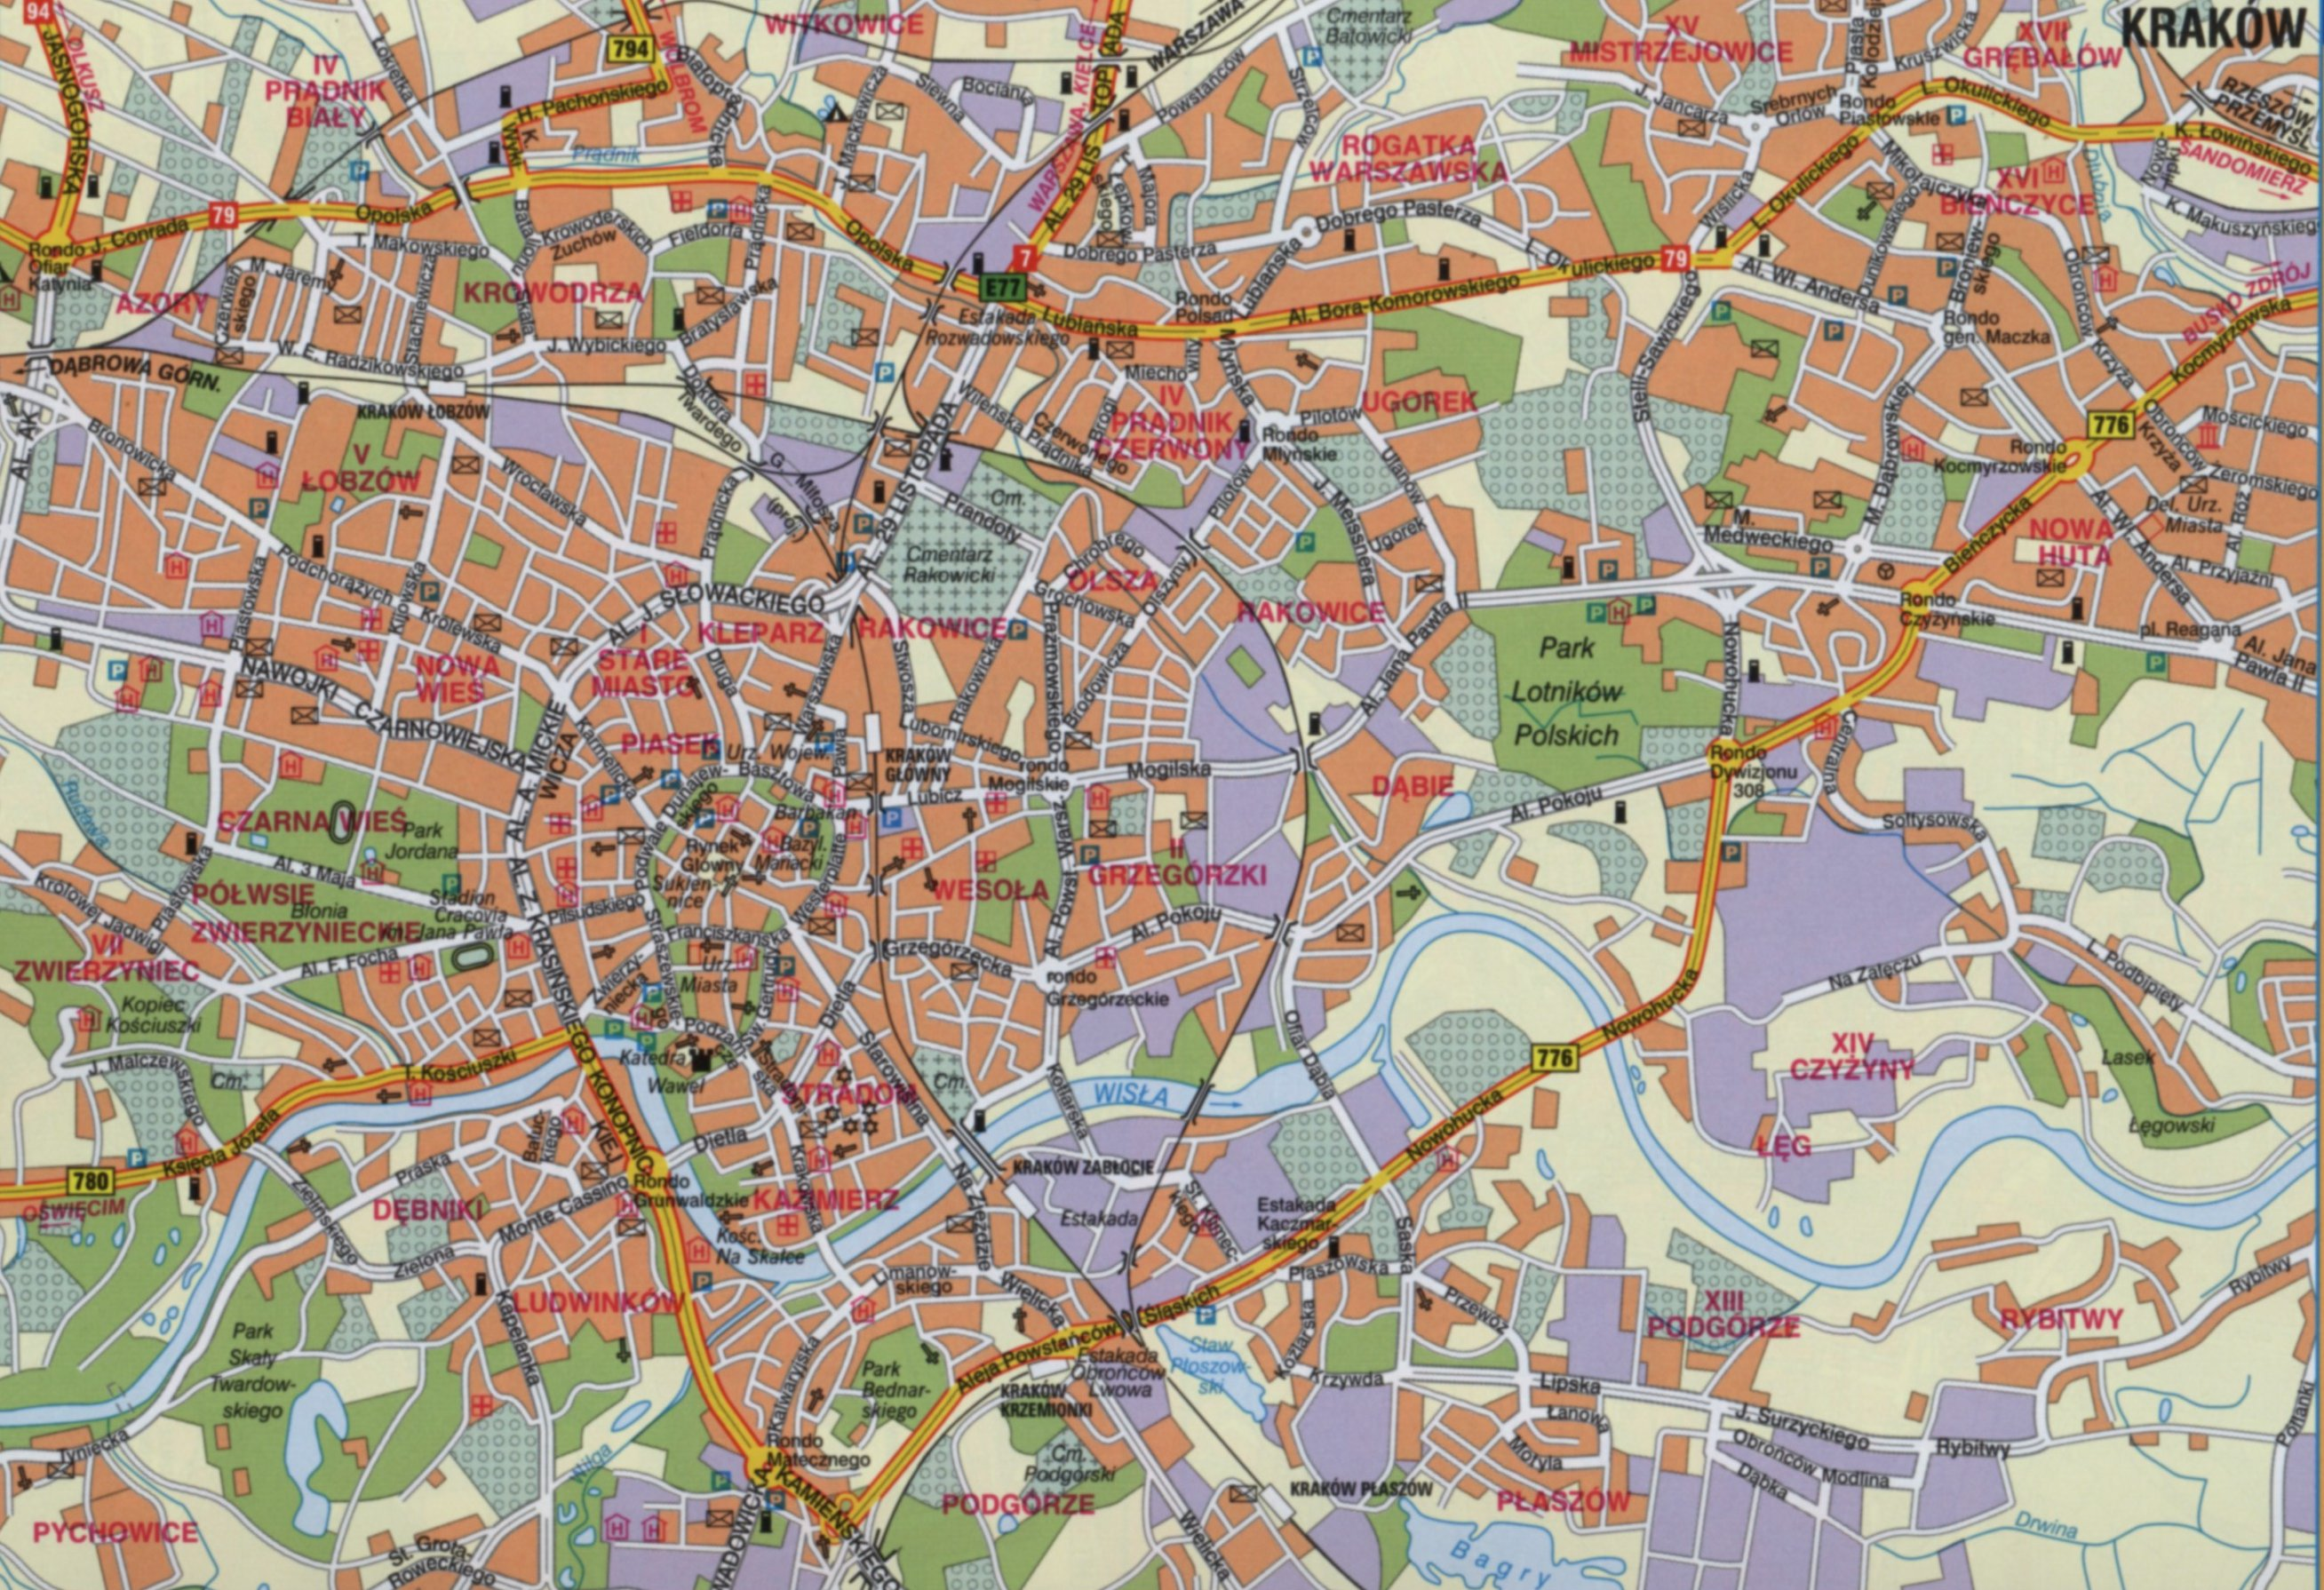 Navigating foreign cities can be confusing, but when you nail it... it's an awesome feeling! http://www.chamberofcommerce.pl/map-of-krakow/map-of-krakow.jpg